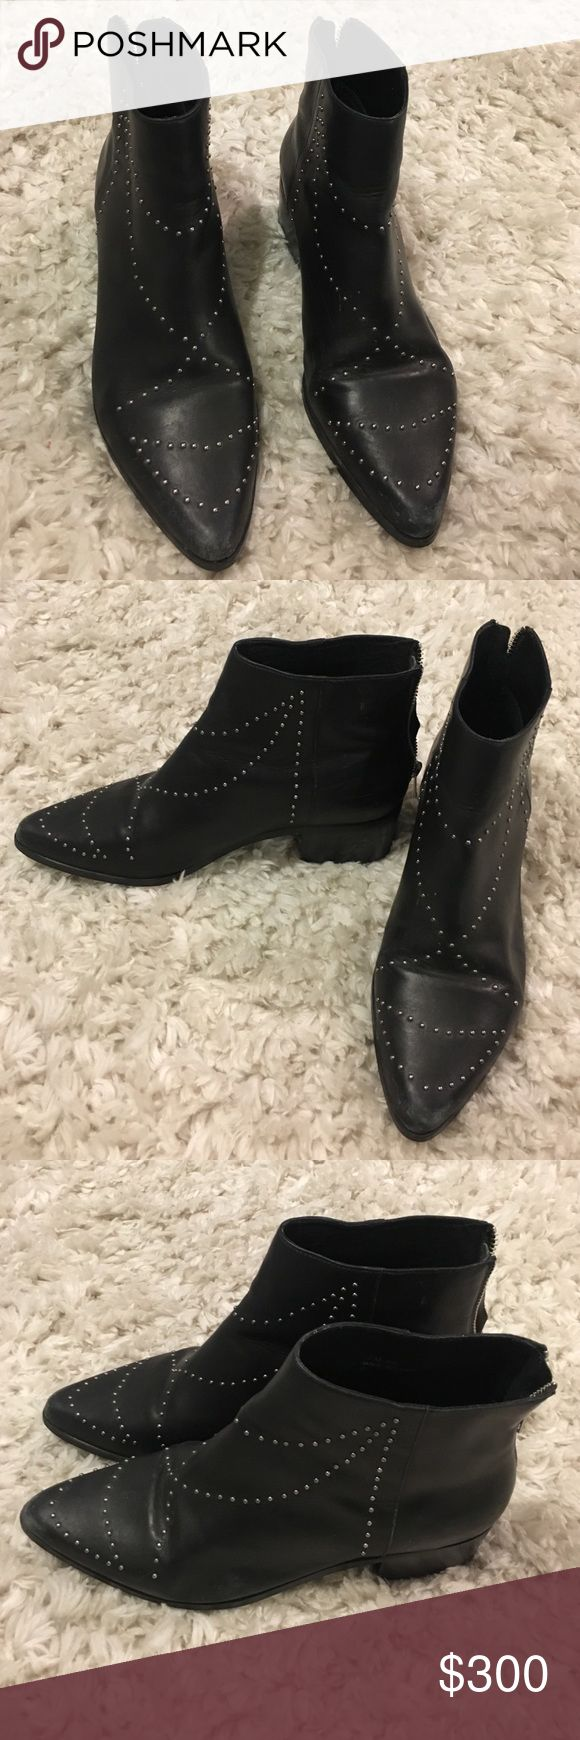 Free People Boots Black studded free people boots. A little over the ankle. Used about 3 times. Free People Shoes Ankle Boots & Booties